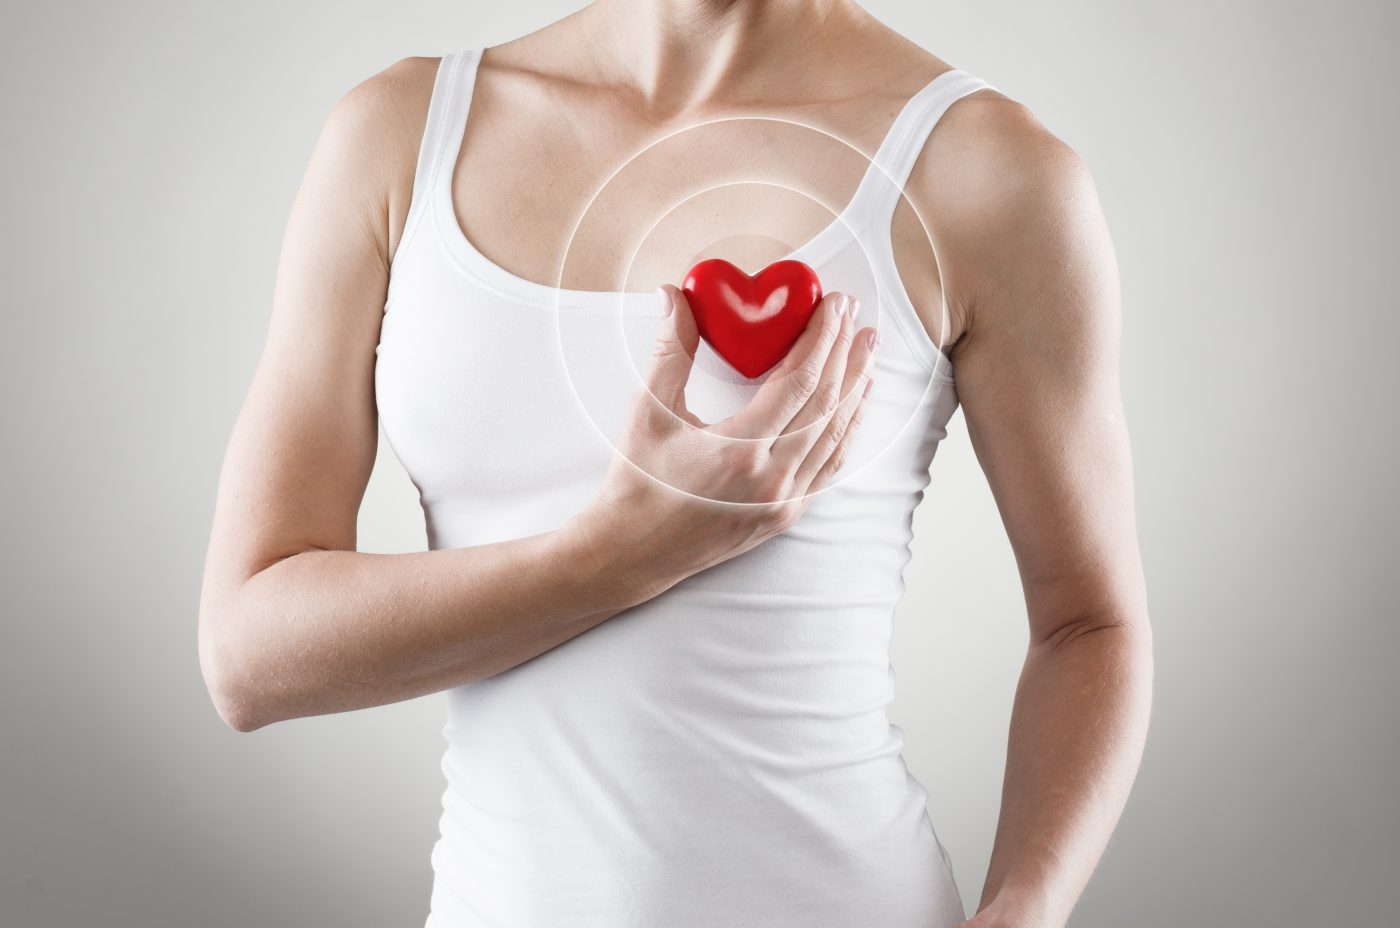 Patients with Severe Fibromyalgia More At Risk for Cardiovascular Incidents